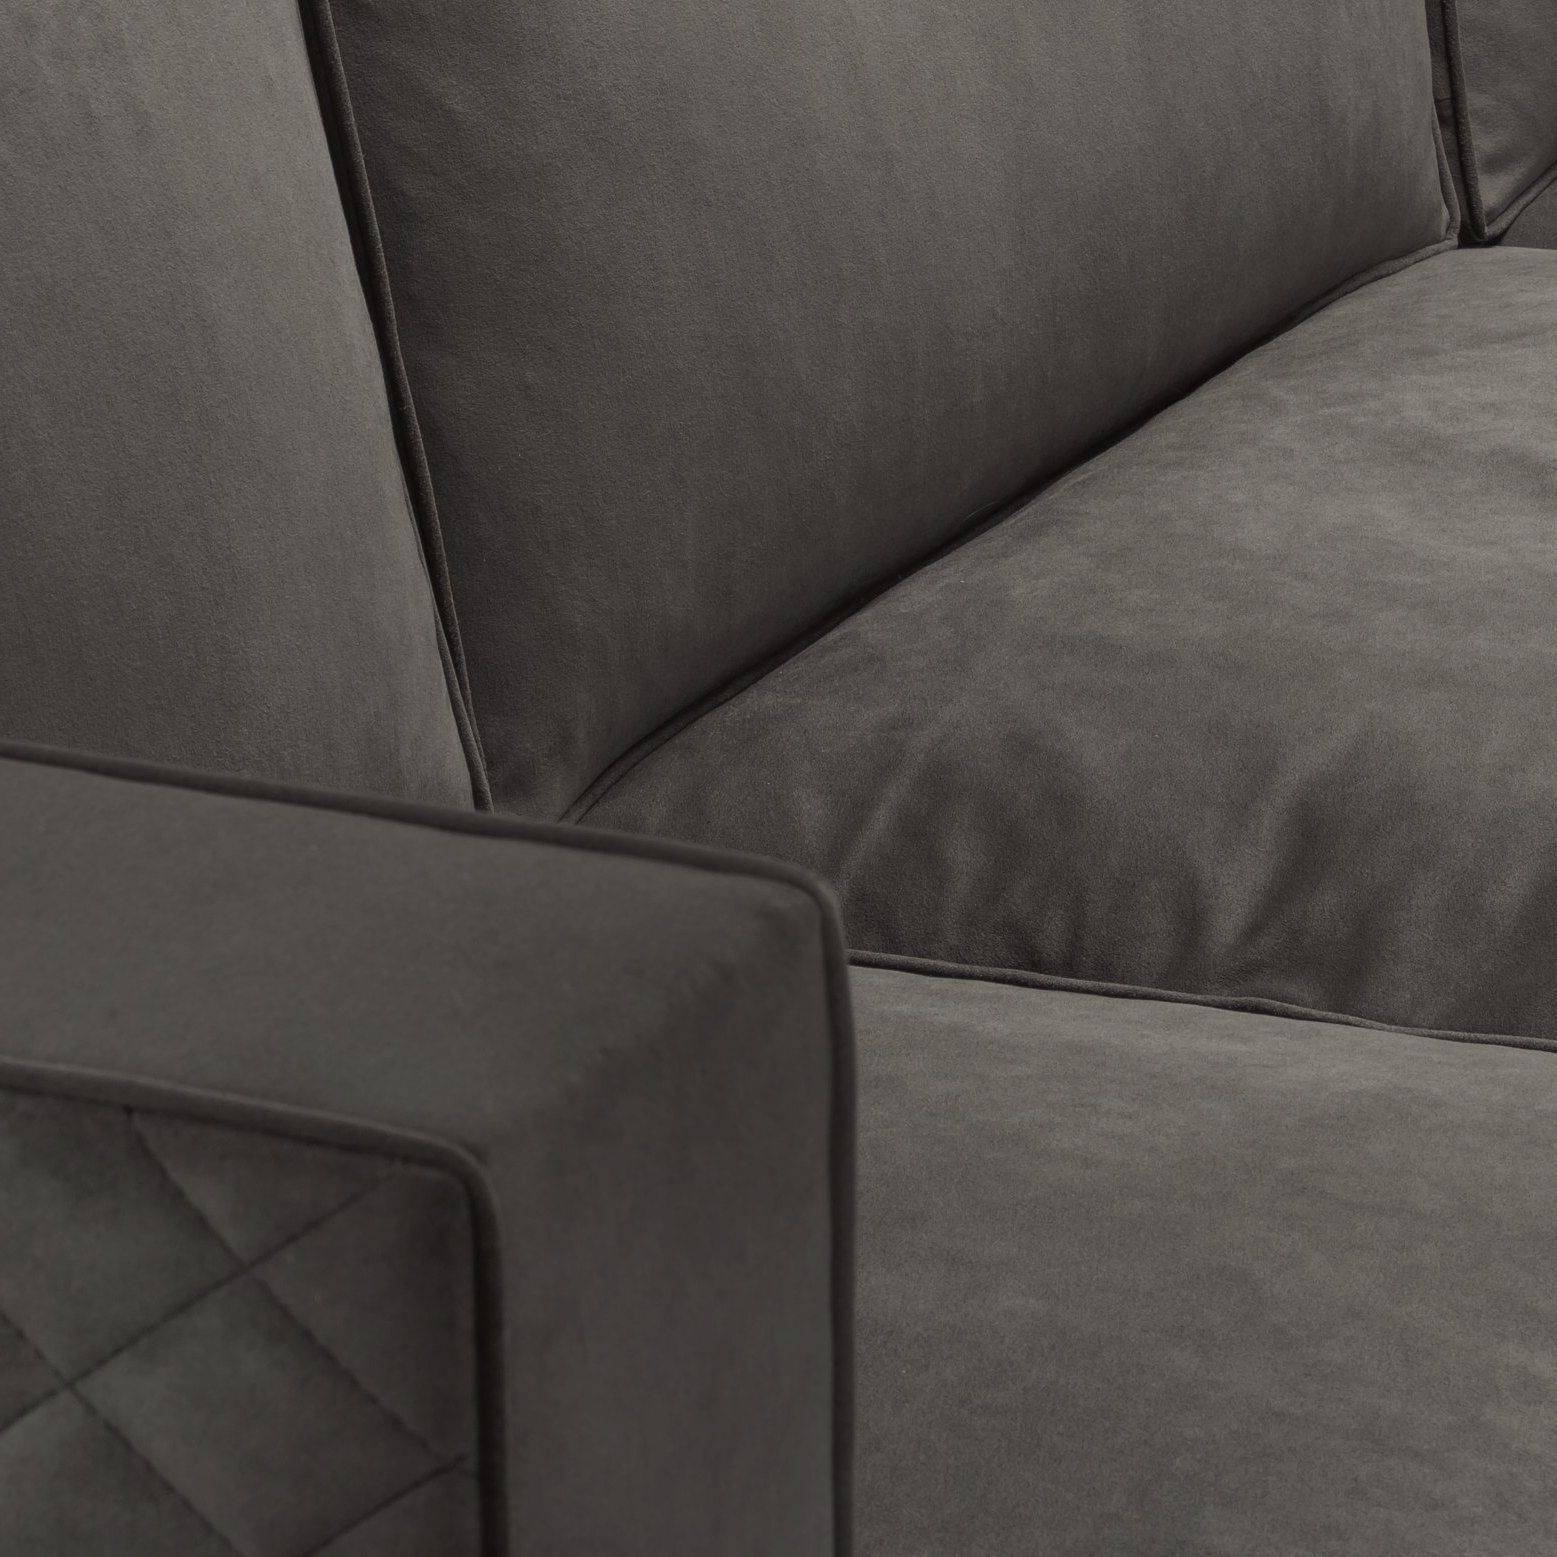 Types of Sofa Cushions - The Sofa Guide - LuxDeco.com